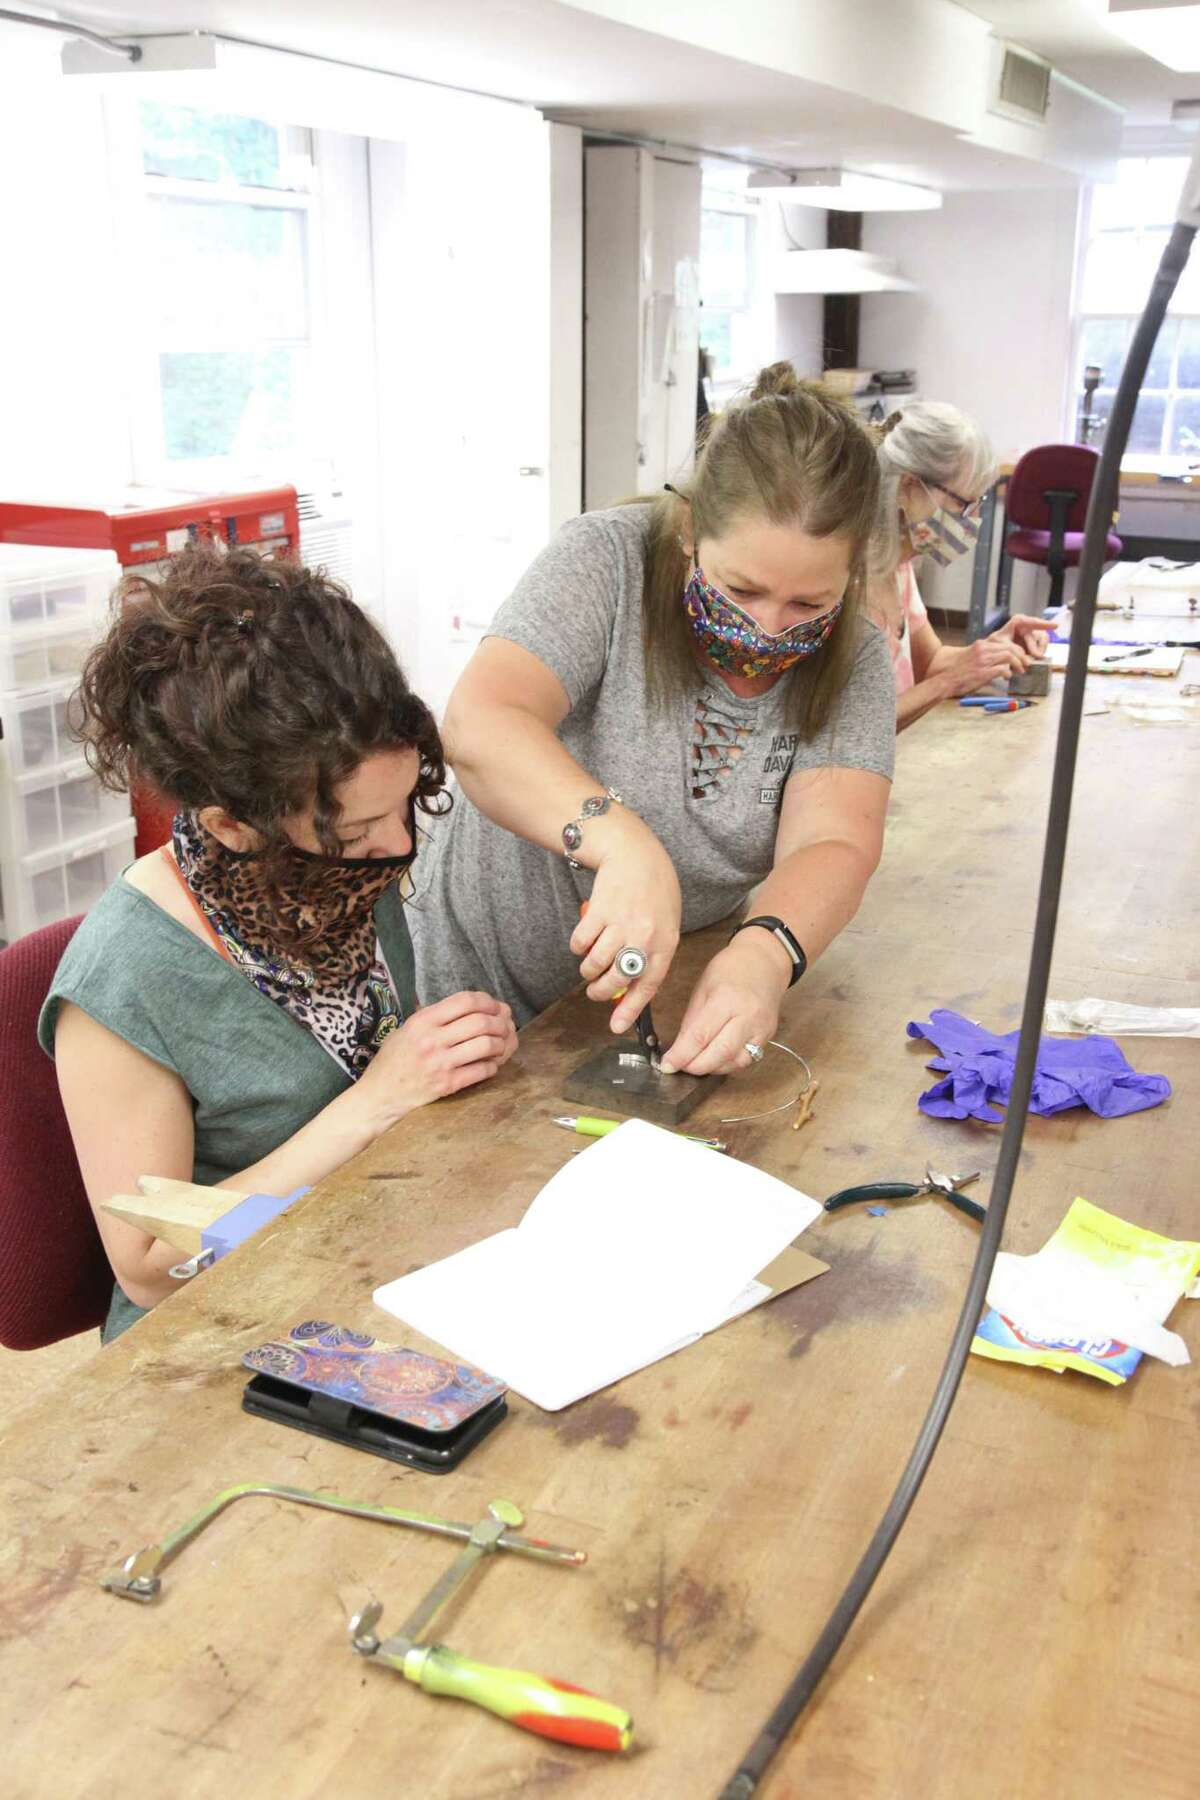 Instructor Maureen Henriques, of New Milford, discusses the making of a bezel with Laurieann Steckler of Holmes, N.Y., during a recent Brookfield Craft Center class on sandcasting. At the Brookfield Craft Center, masks are required for all instructors and students participating in programs at the center's studios.